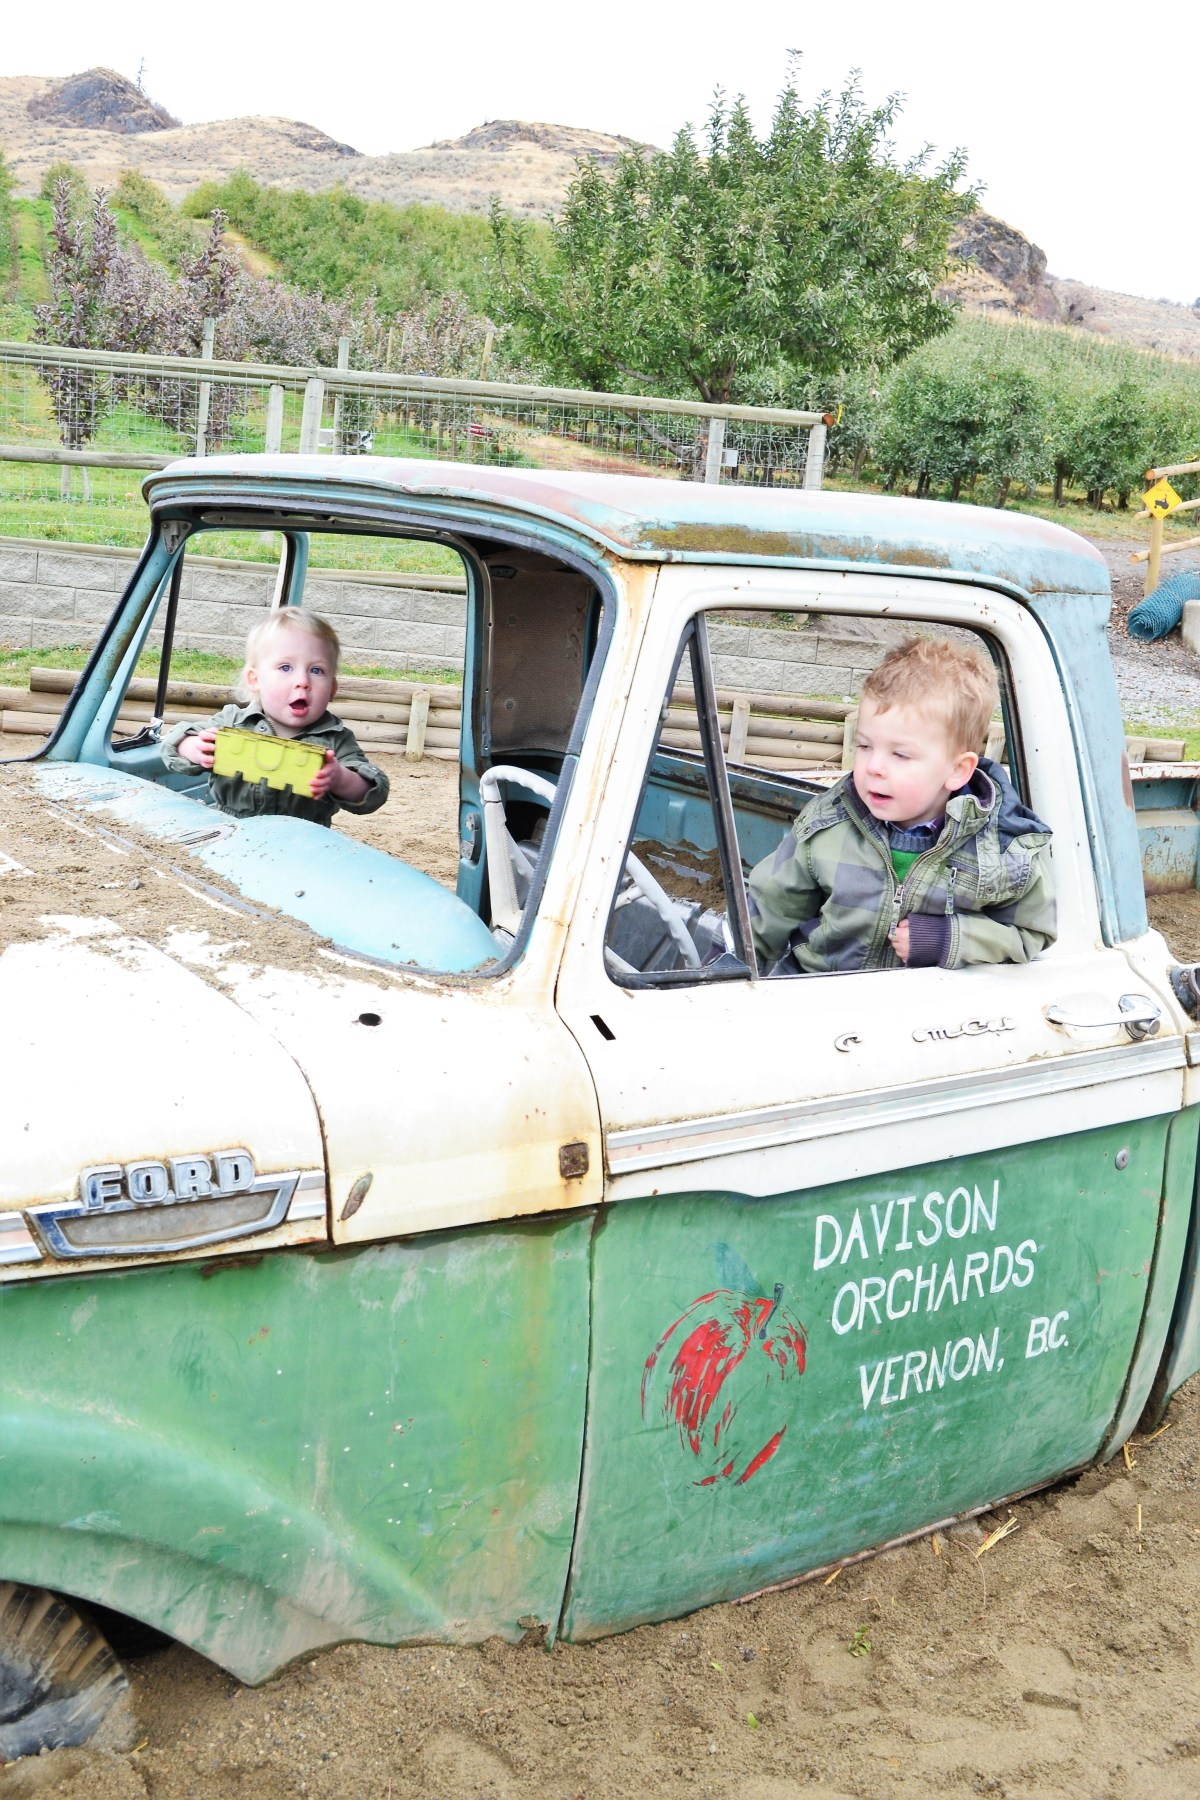 Davidson Orchard Adventure - ford truck